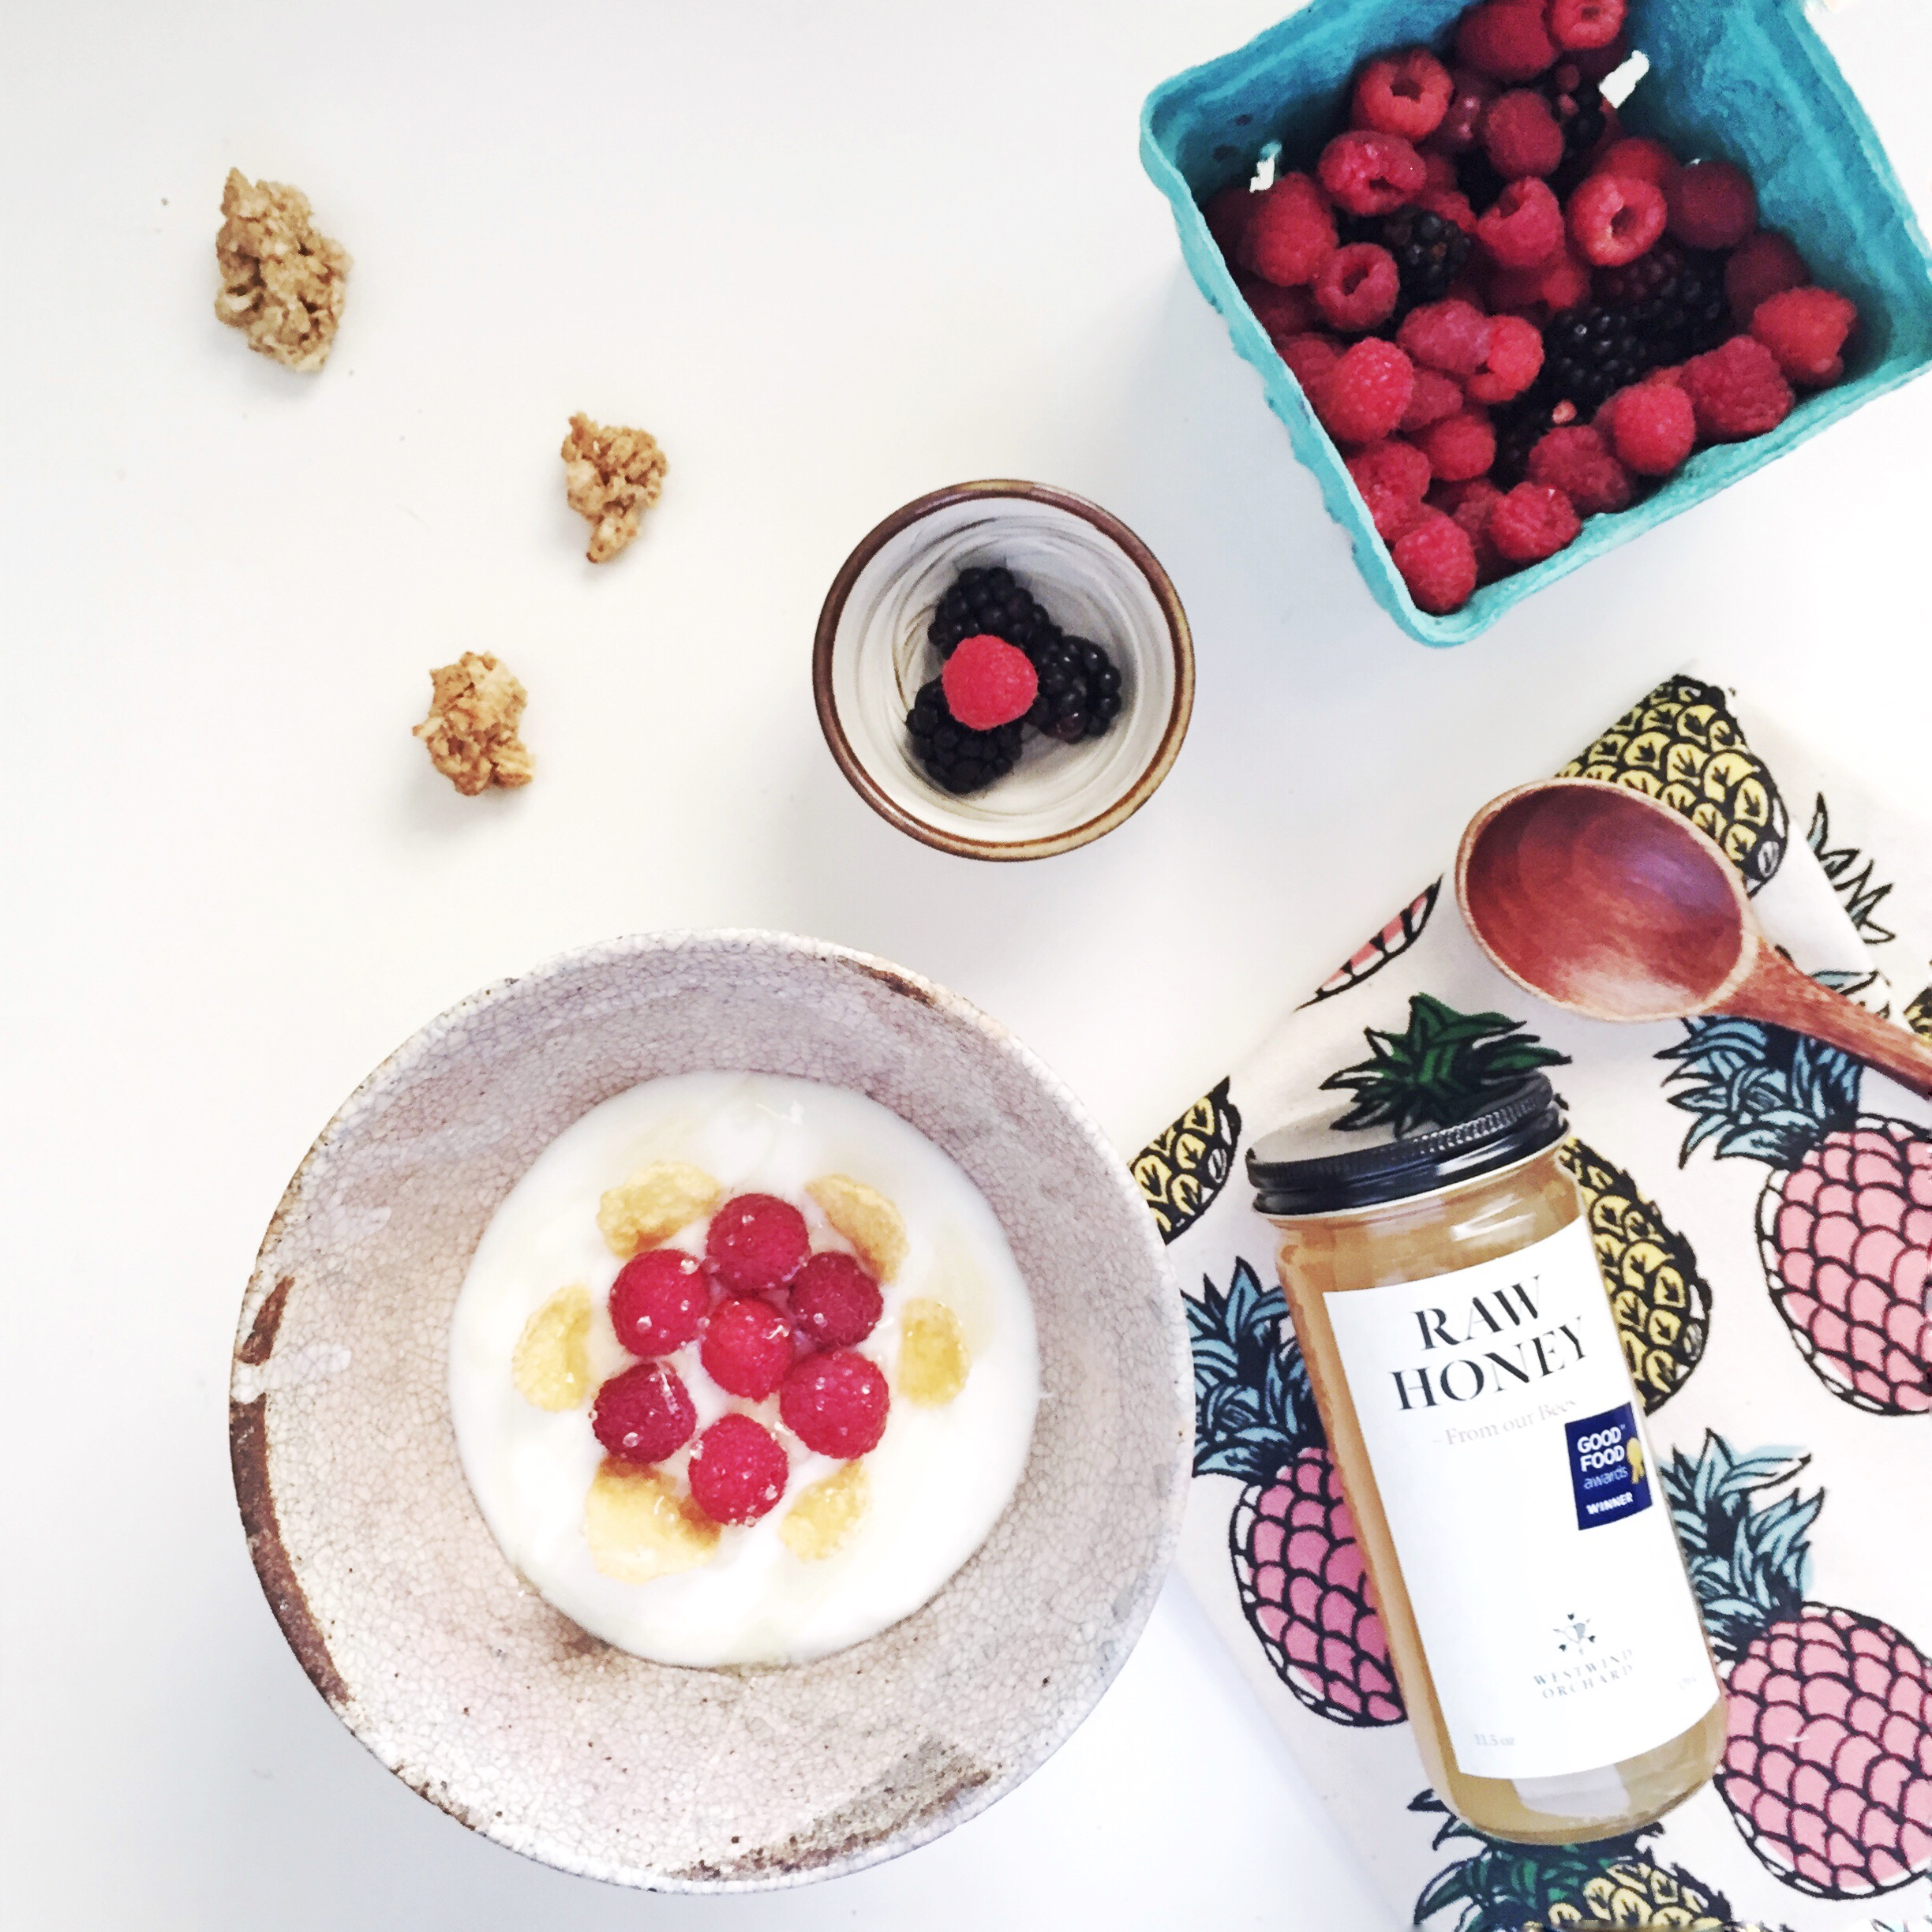 Breakfast yogurt bowl with self-picked raspberries, blackberries and the Raw honey from the Orchard